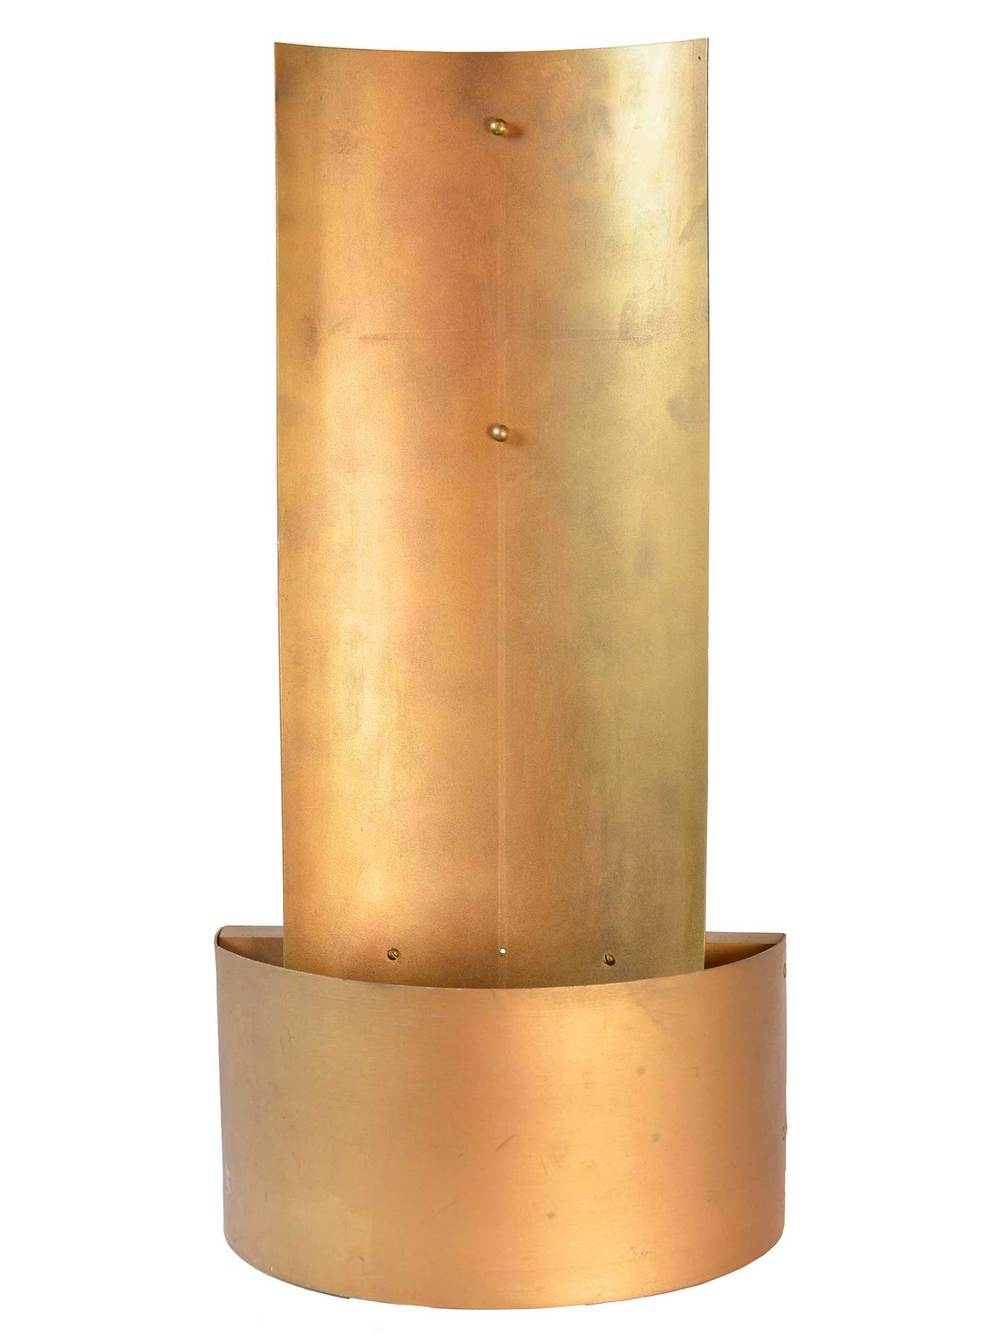 34278-Brass-Wall-Sconce-Full.jpg